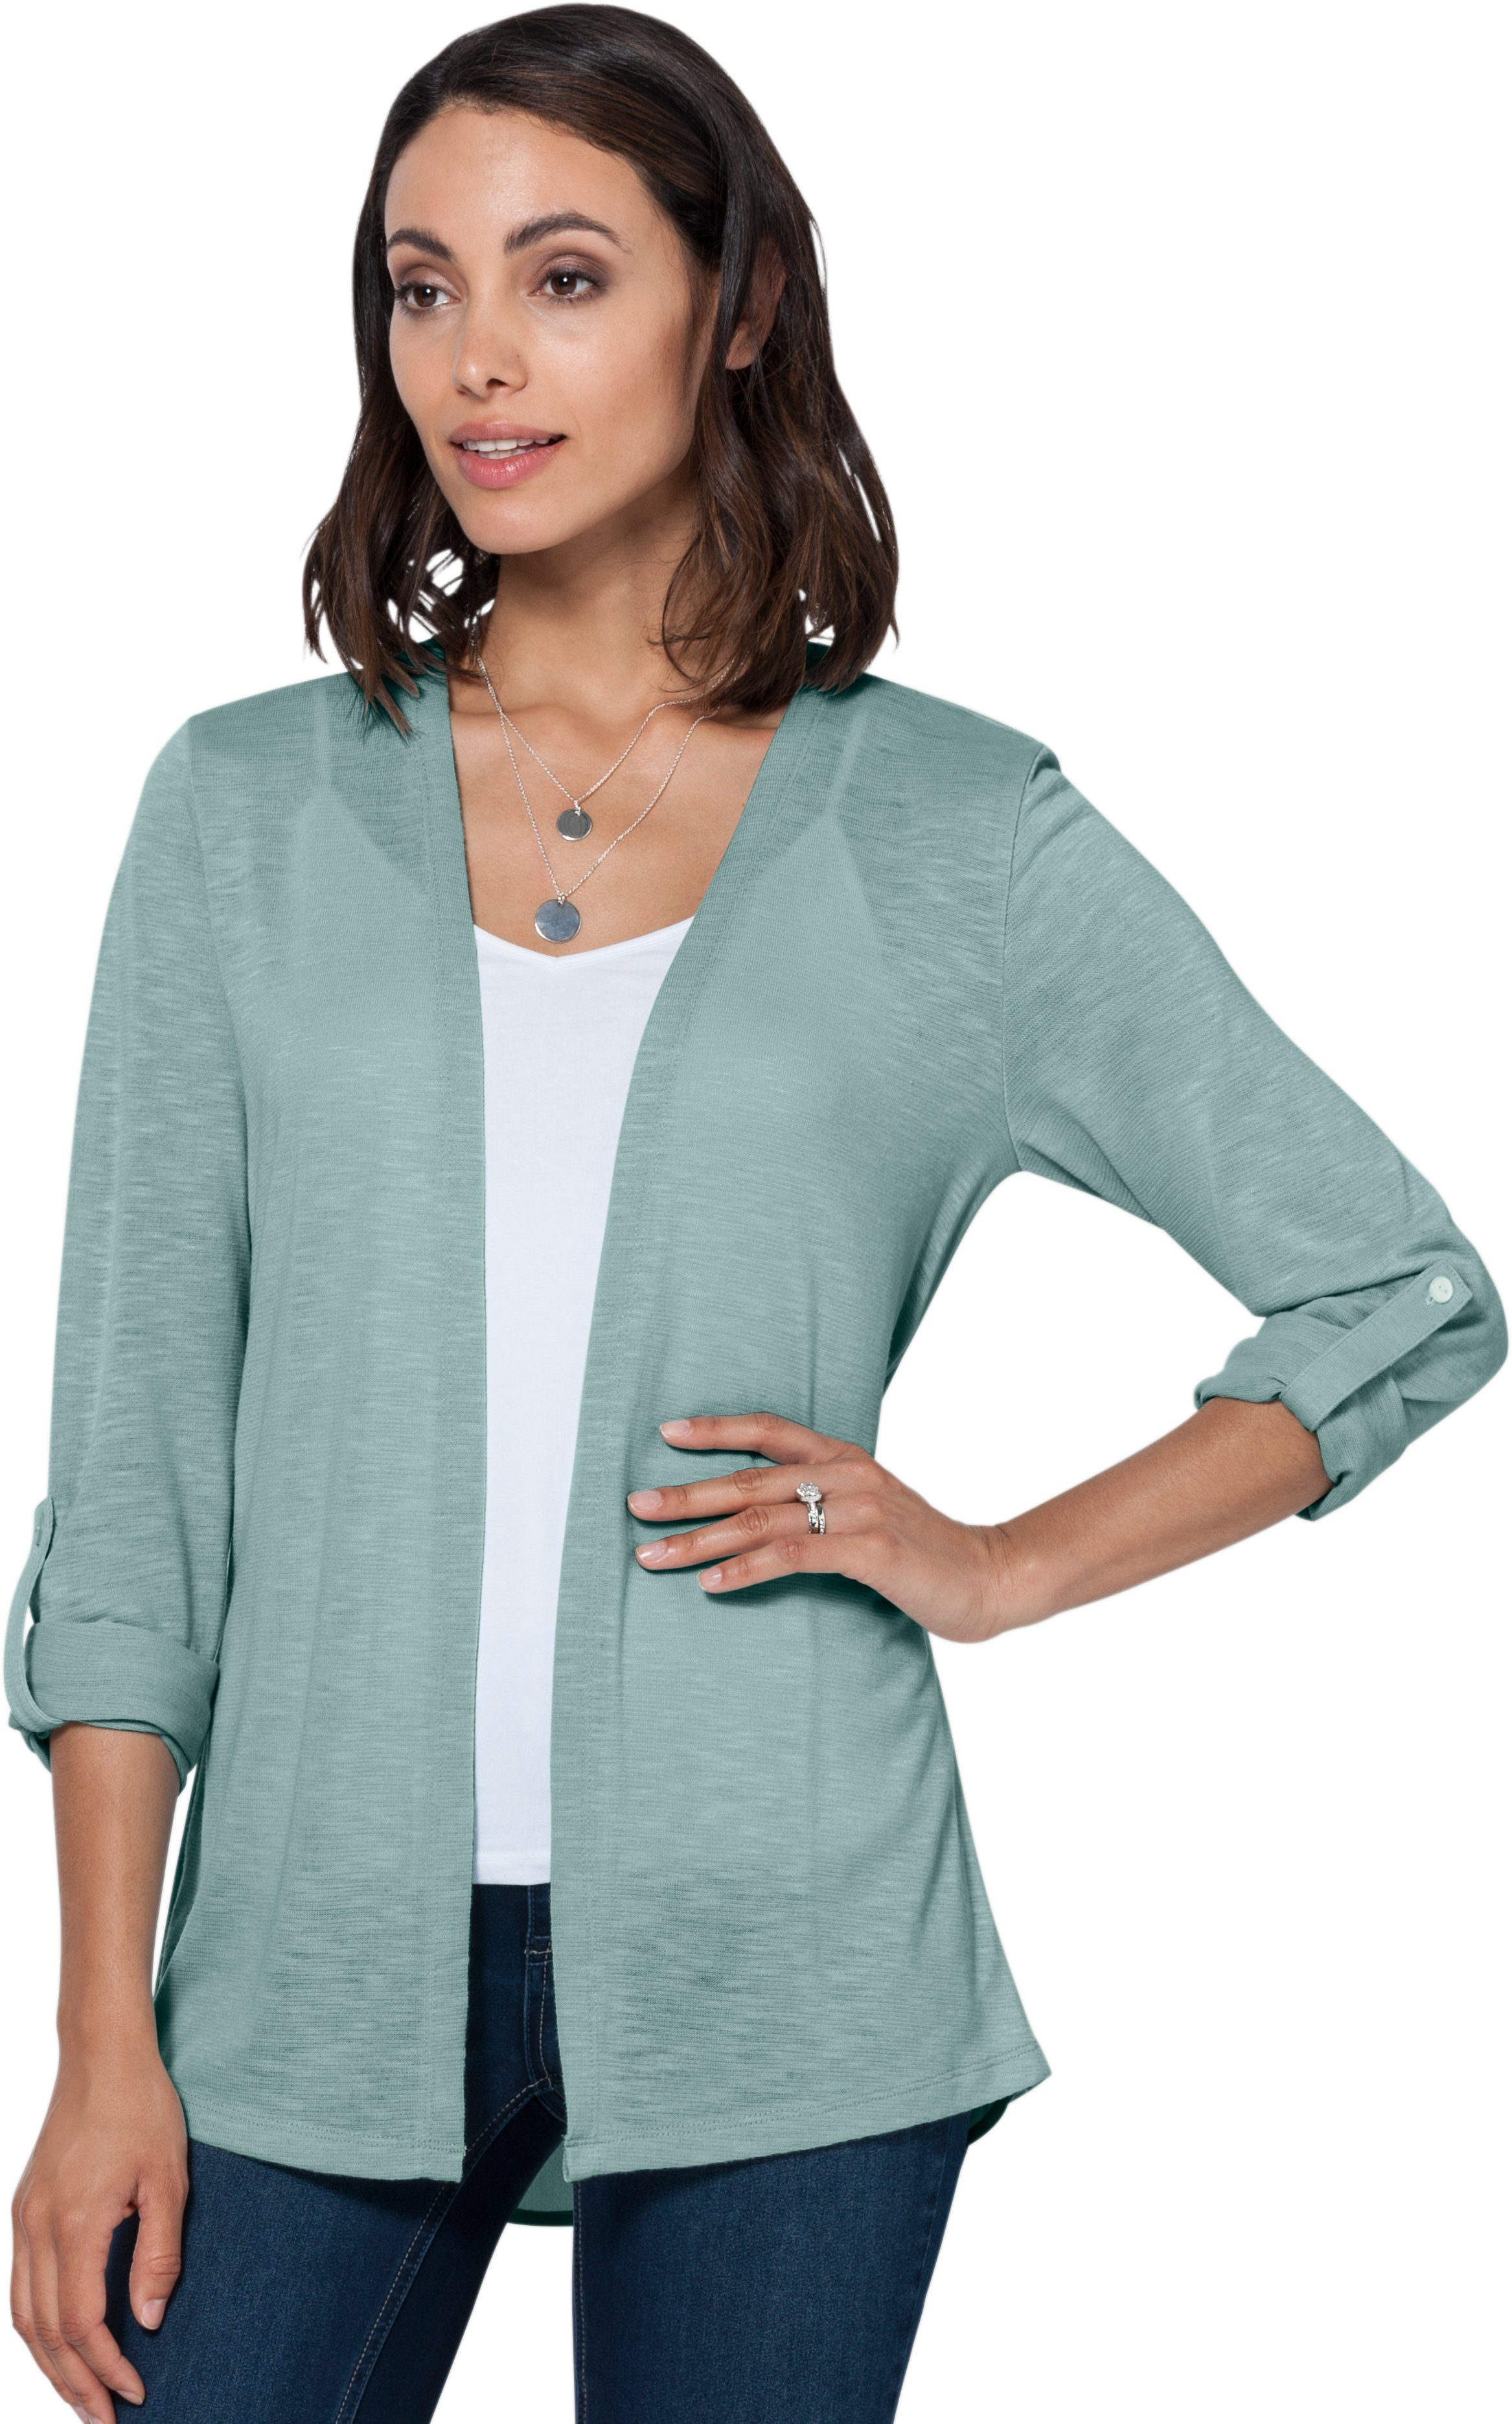 Ambria Shirtjacke in modisch offener Form